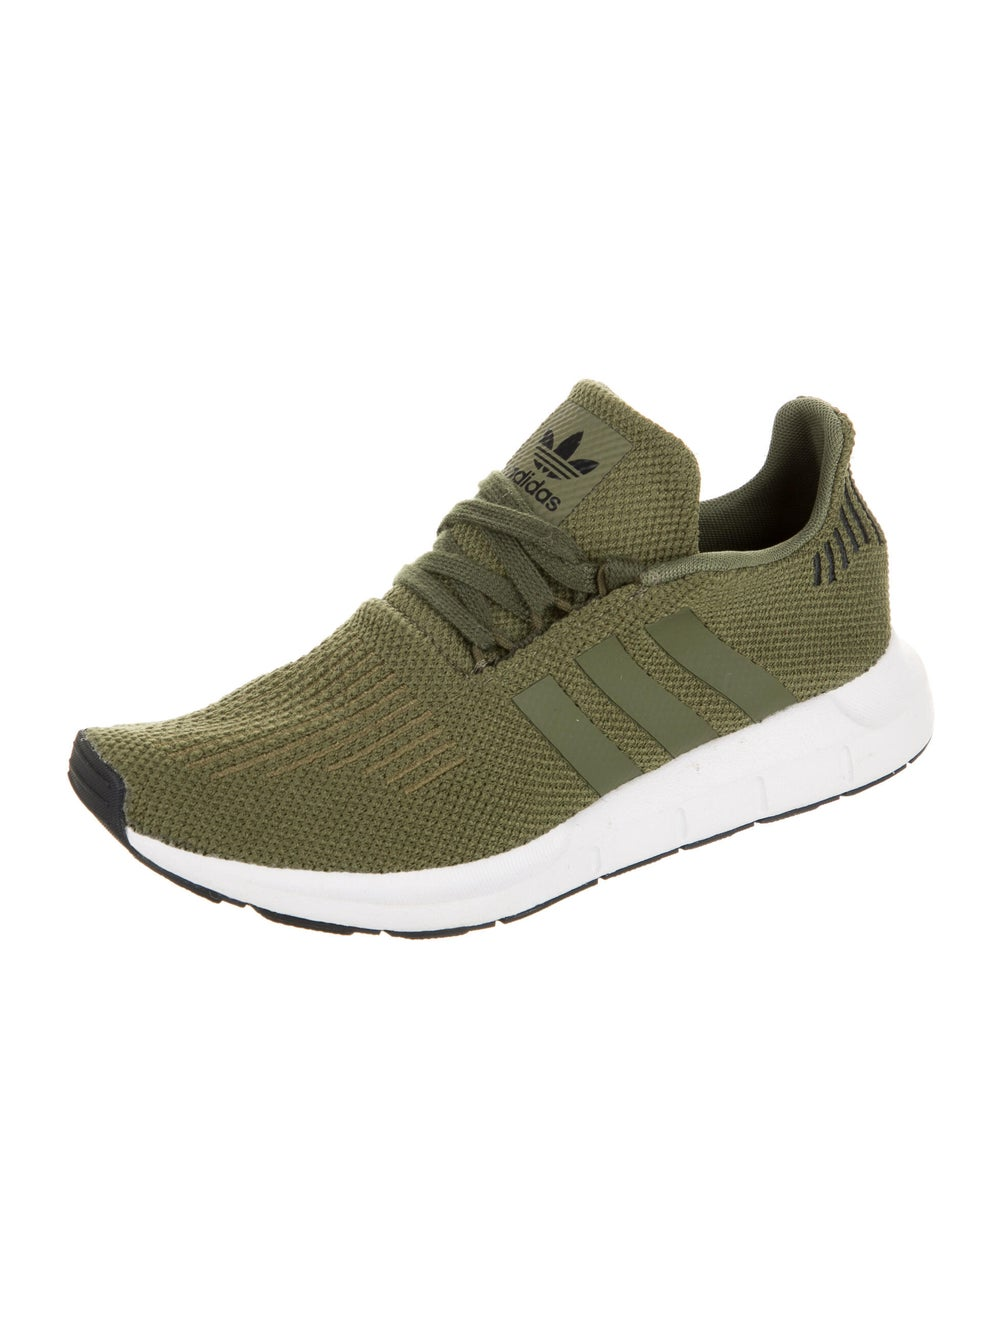 Adidas Athletic Sneakers Green - image 2